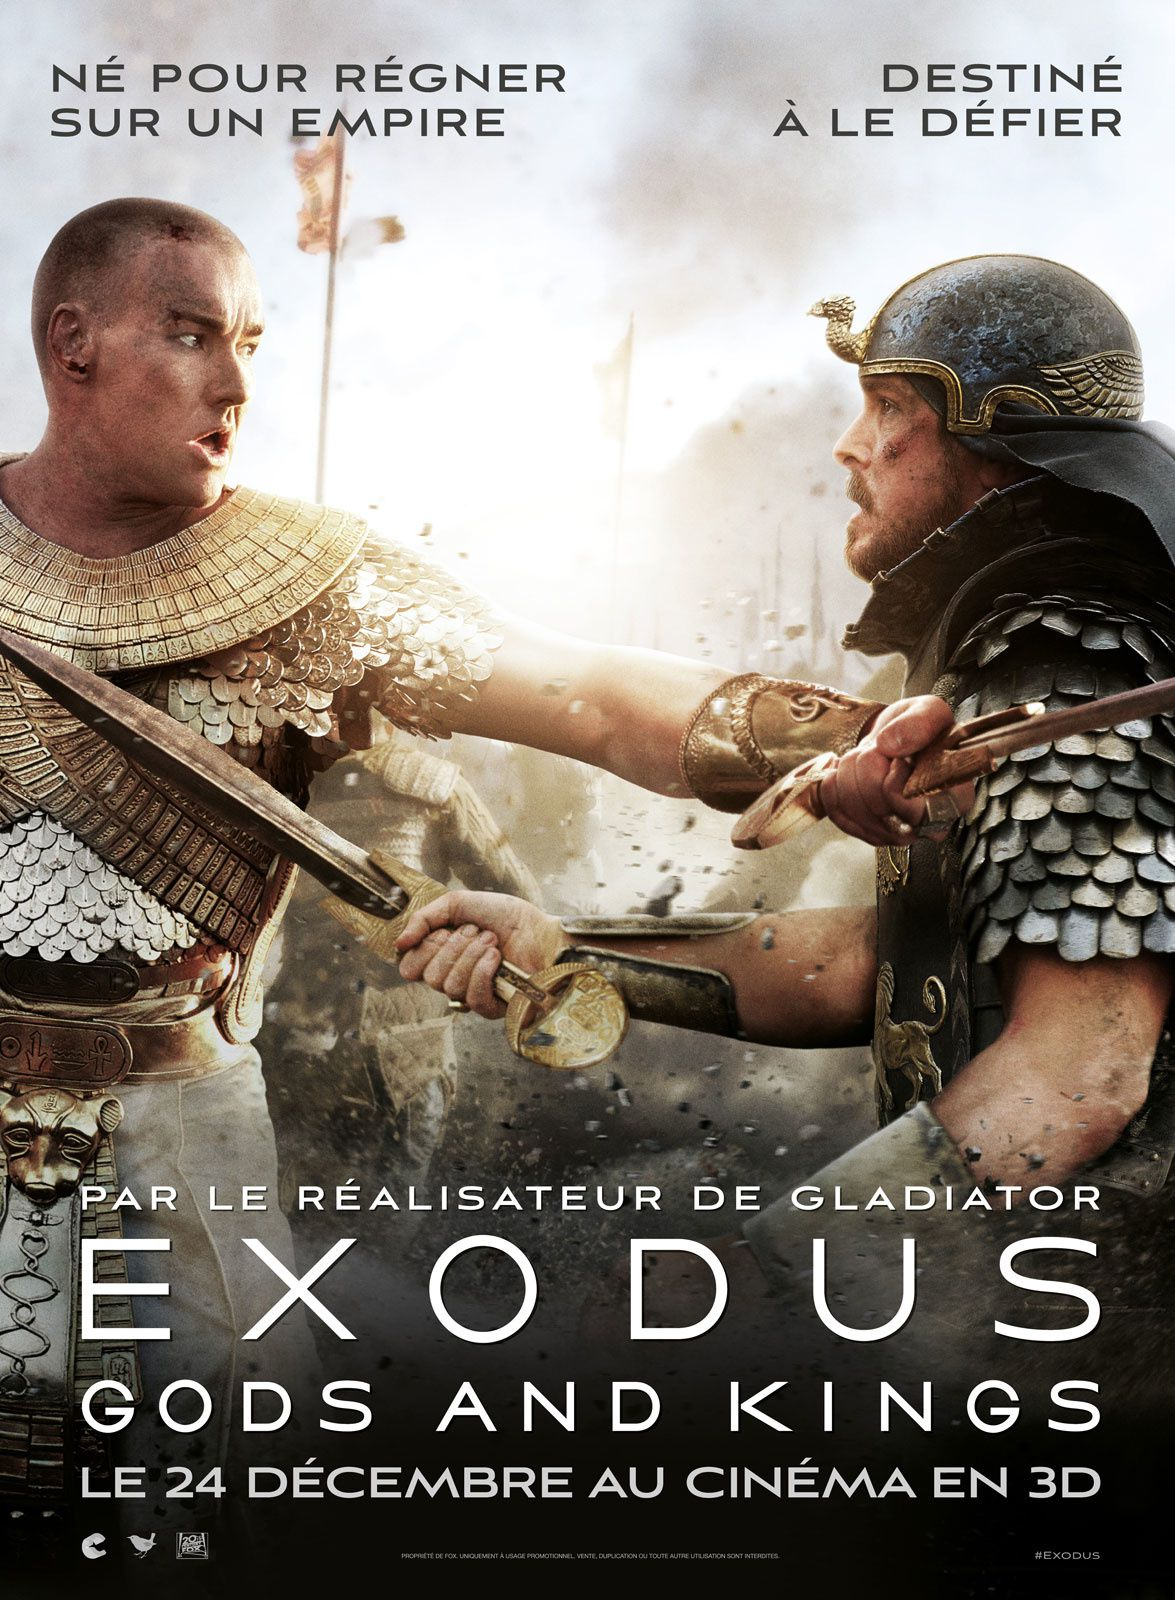 Le film Exodus Gods and Kings ... et ses mensonges (màj)